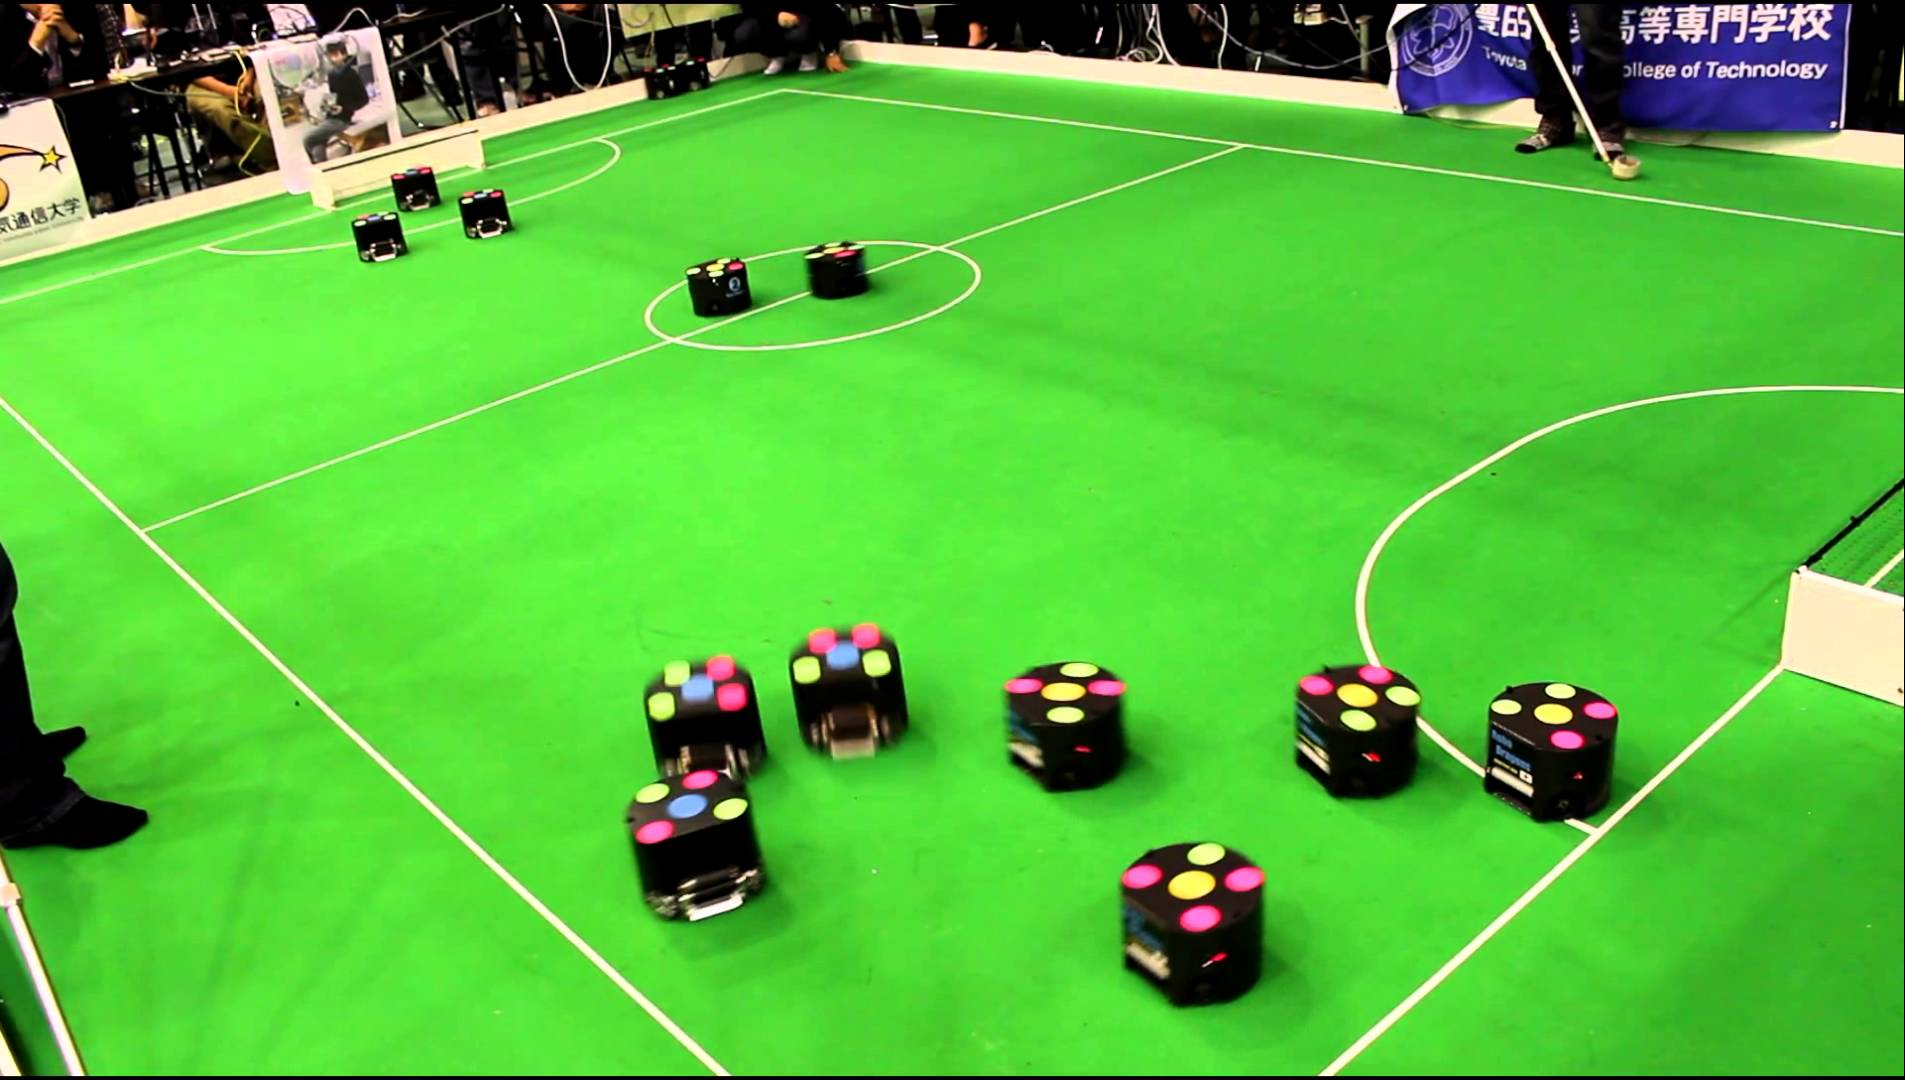 A photo from RoboCup Japan open 2013